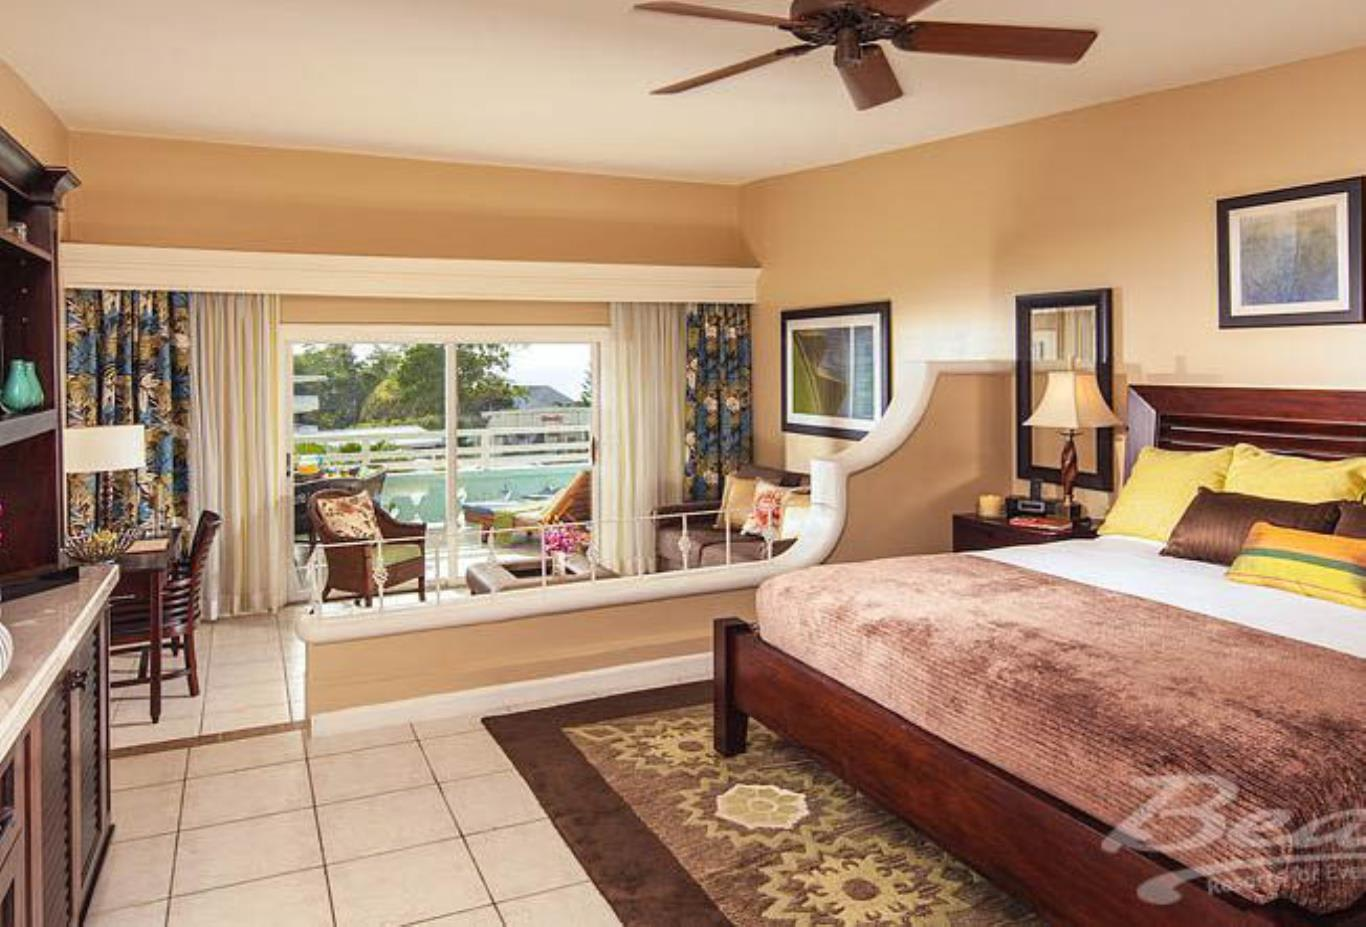 Caribbean Honeymoon Oceanview Concierge Veranda Suite - HOVK,HOVD